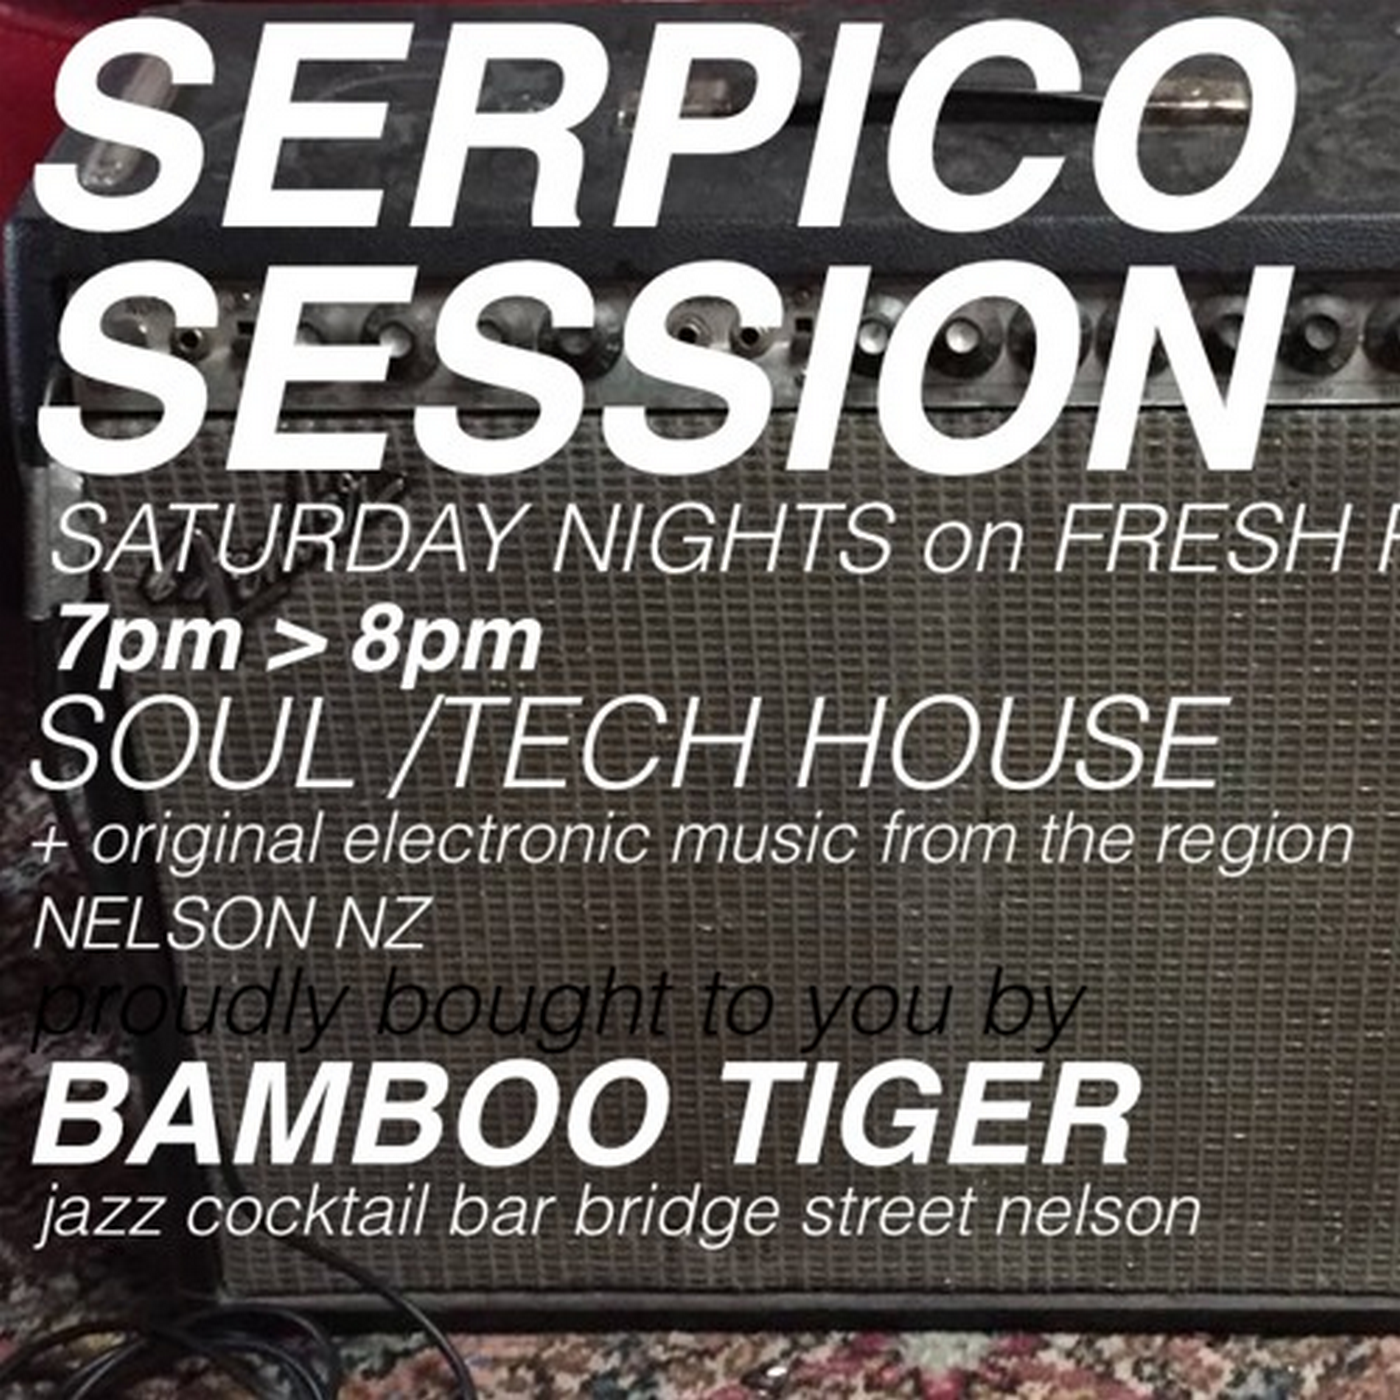 https://cdn.accessradio.org/StationFolder/freshfm/Images/Serpico-Session.png